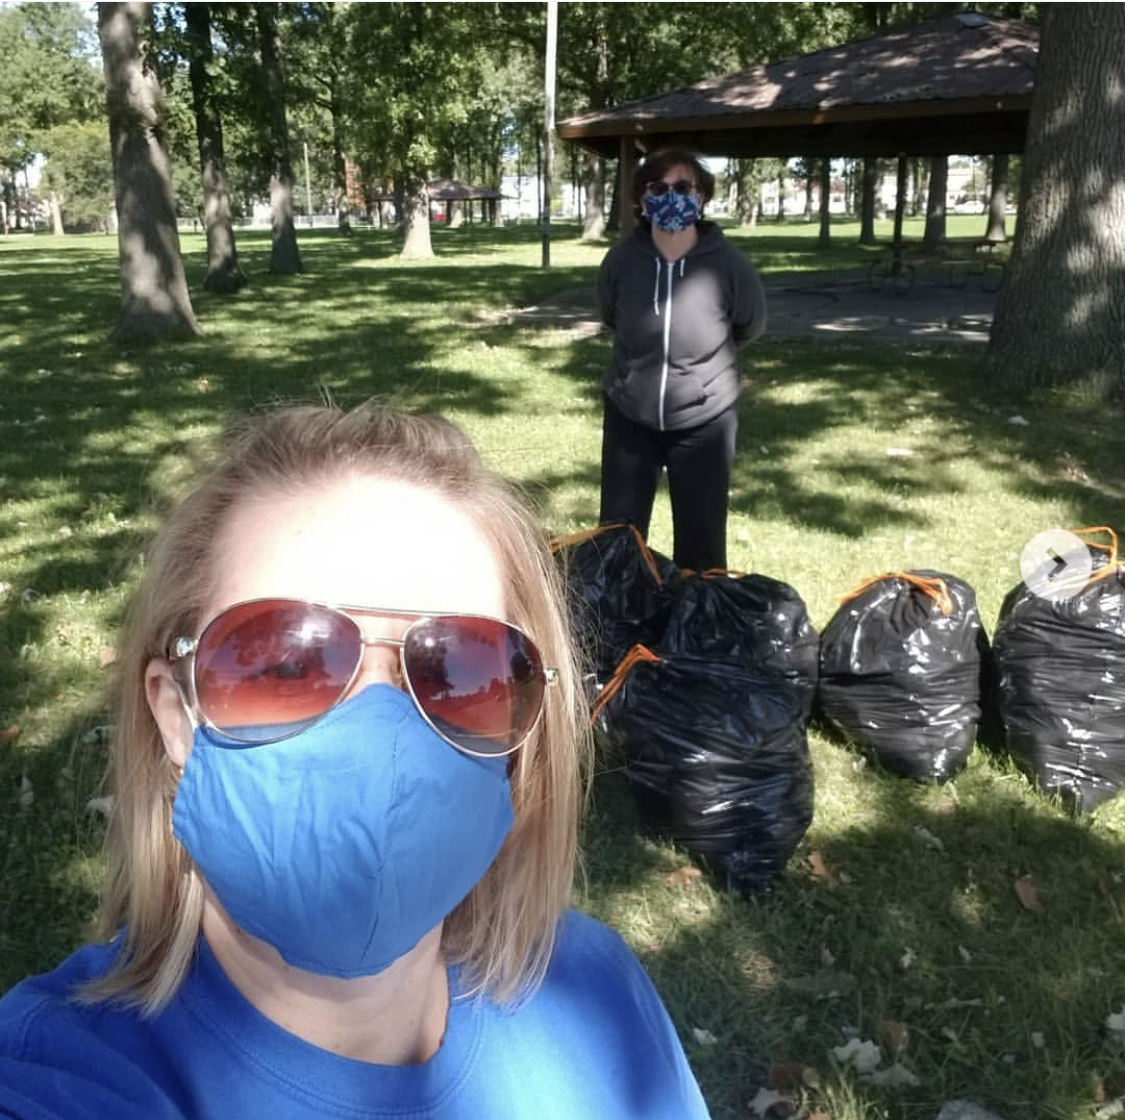 Mandy Earl, student activities office associate, posing with a student on HFC Volunteer Day at Youth Center Park